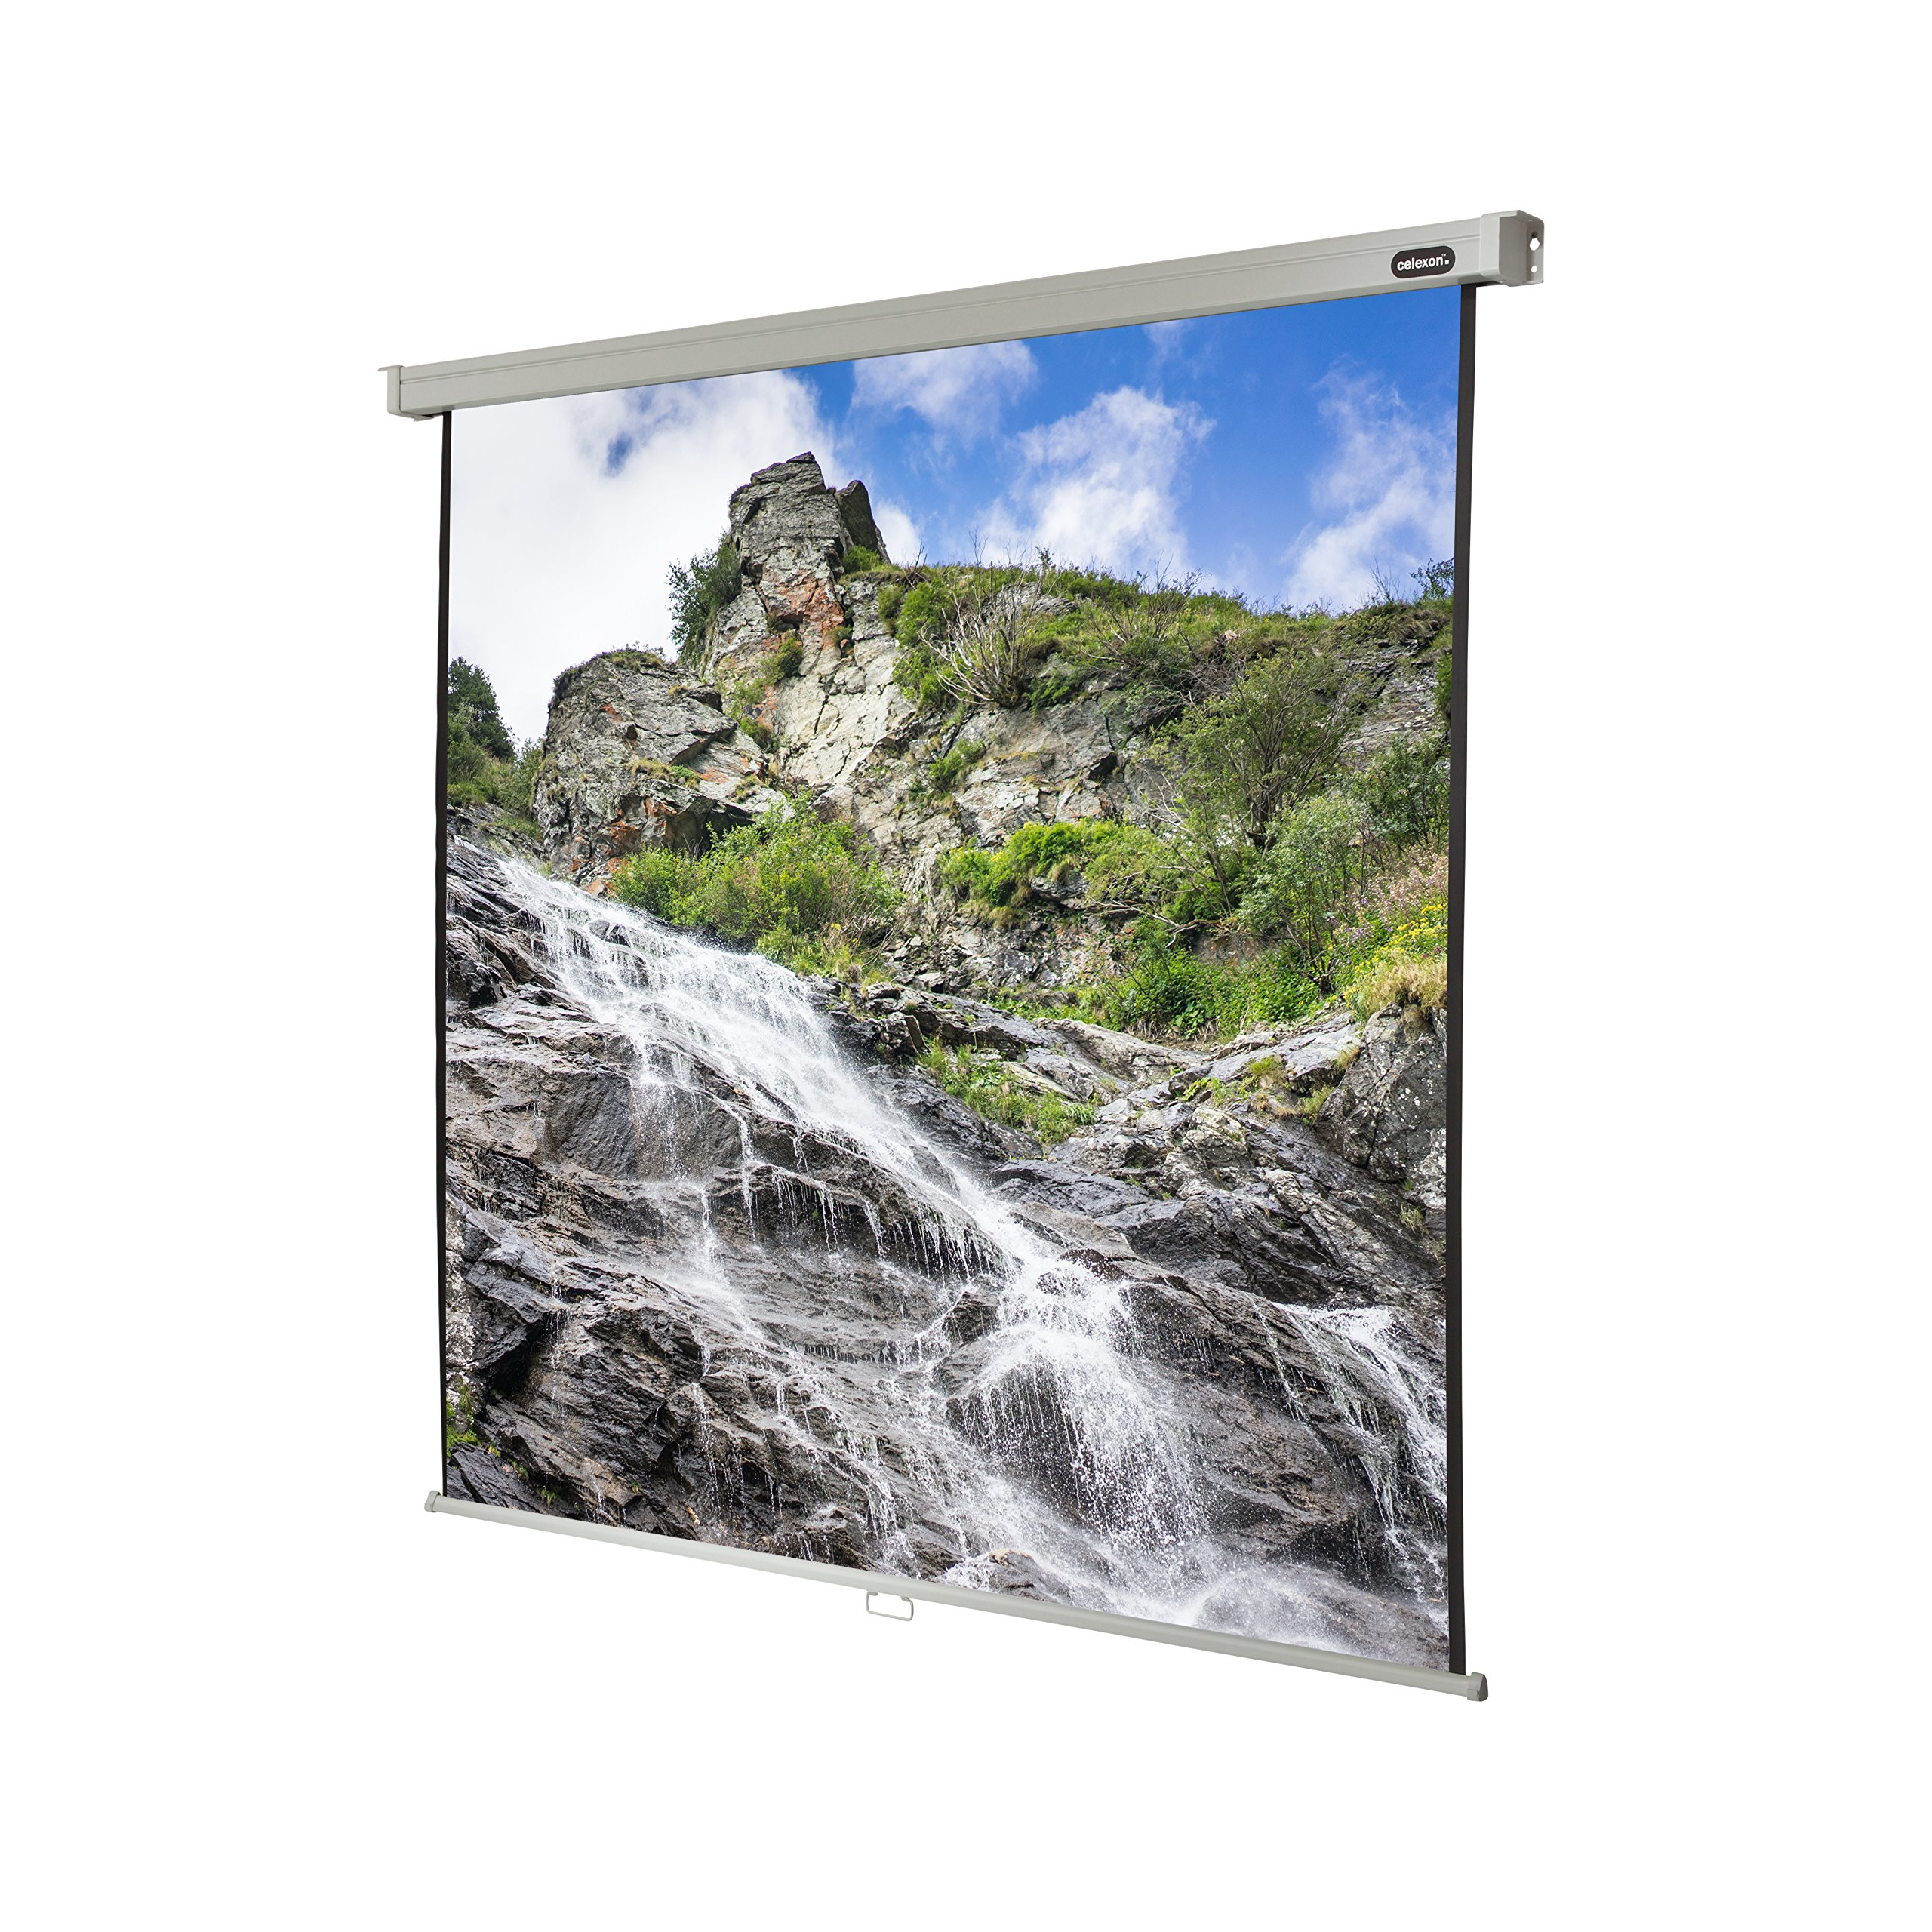 "celexon 122"" Manual Pull Down Projector Screen Manual Professional, 85 x 85 inches viewing area, 1:1 format, Gain factor of 1.2 by Celexon (Image #1)"